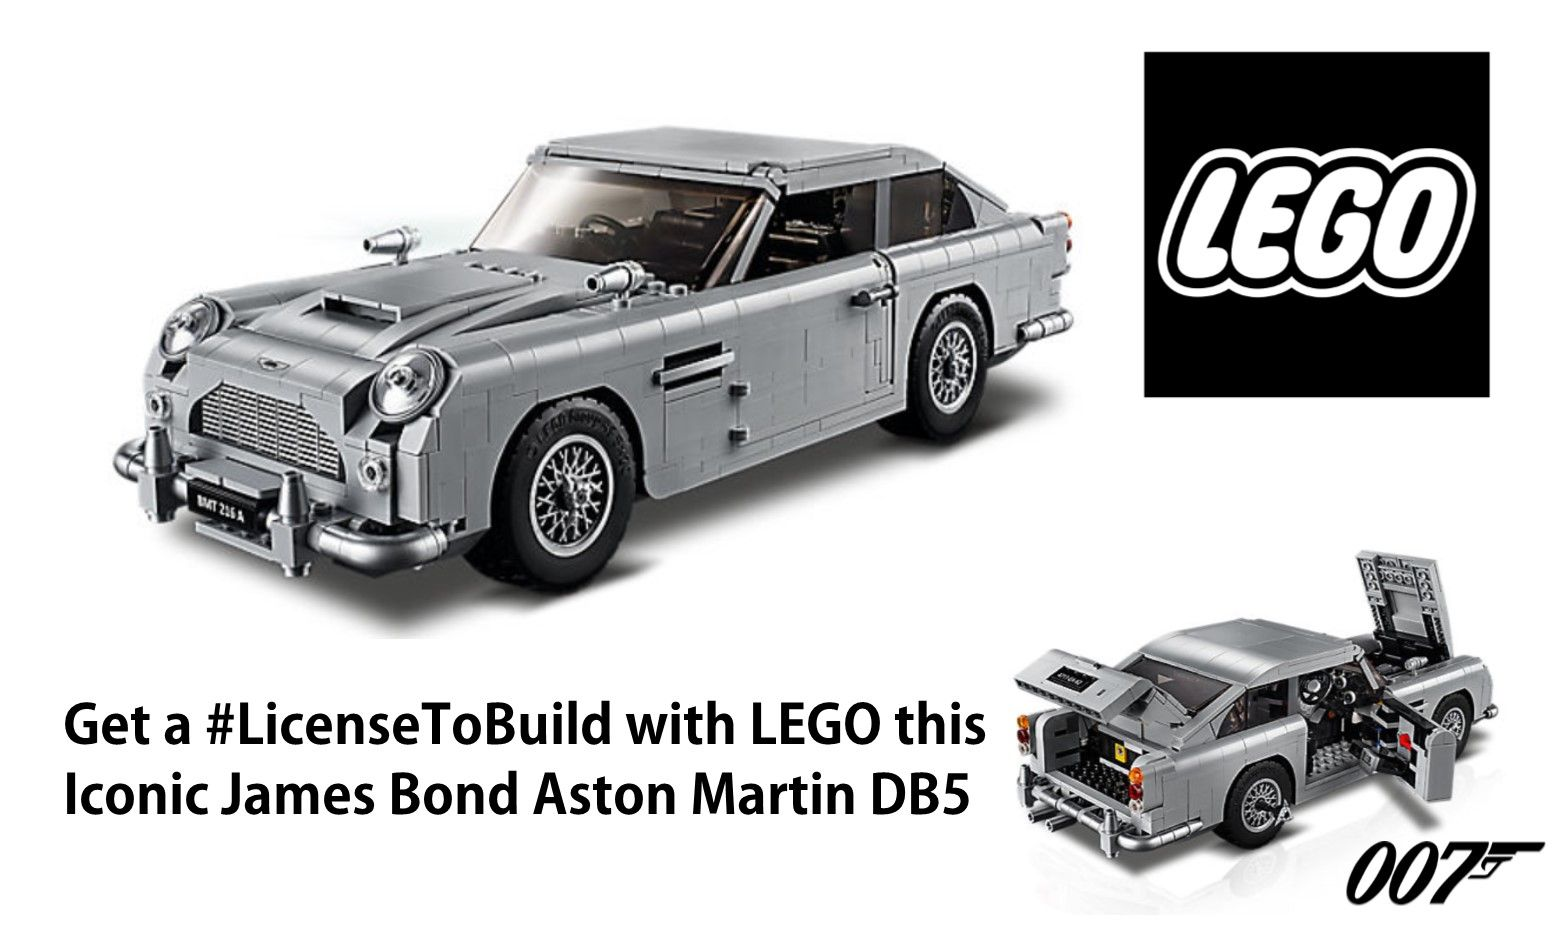 New James Bond Aston Martin DB5 Lego on Sale this August